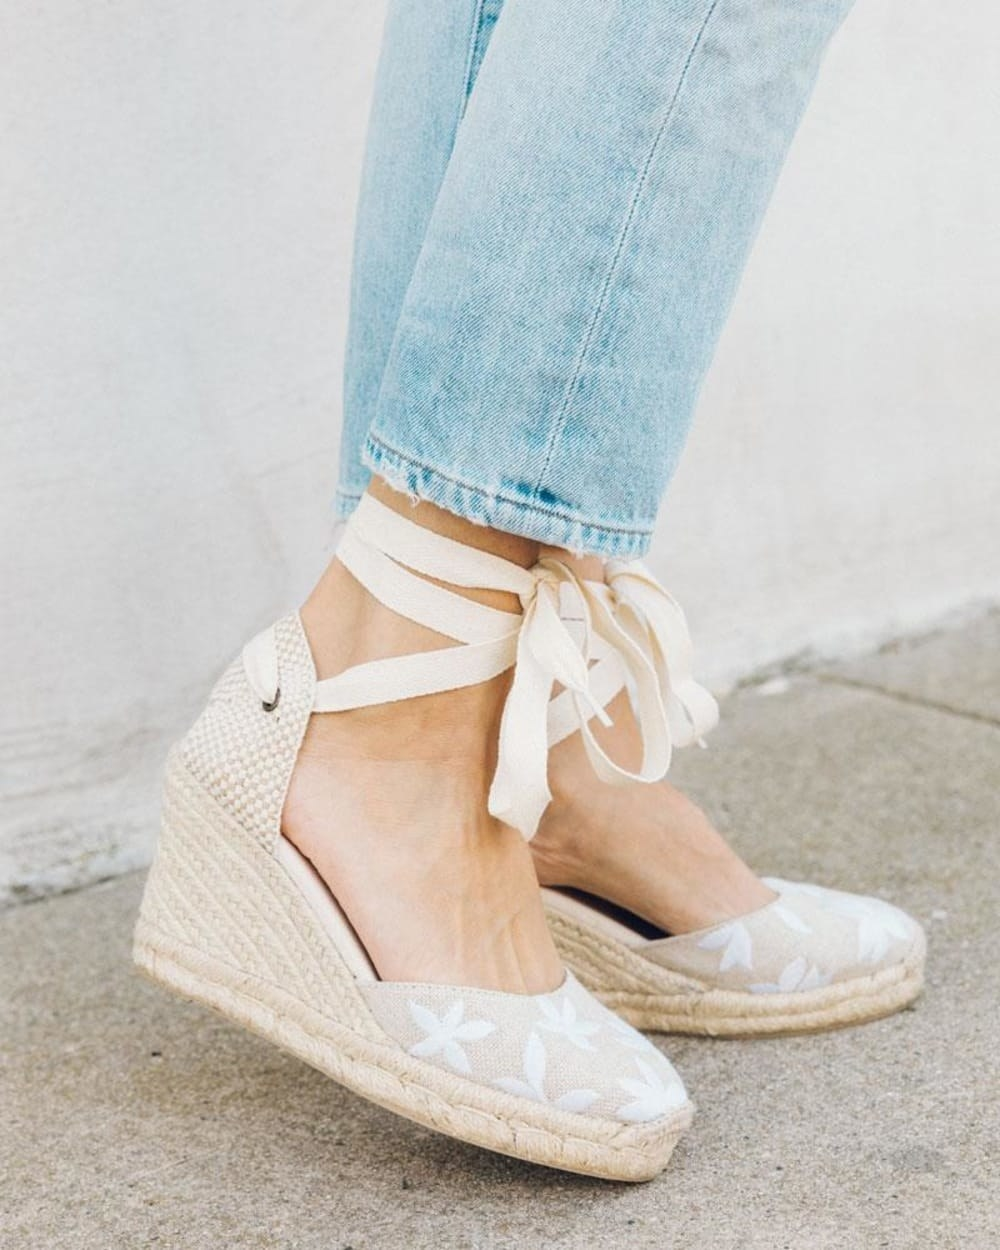 Model wearing the shoes with a 3.50-inch wedge, white floral embroidery on the toe, braided jute around the wedge, and a beige tie around the ankle